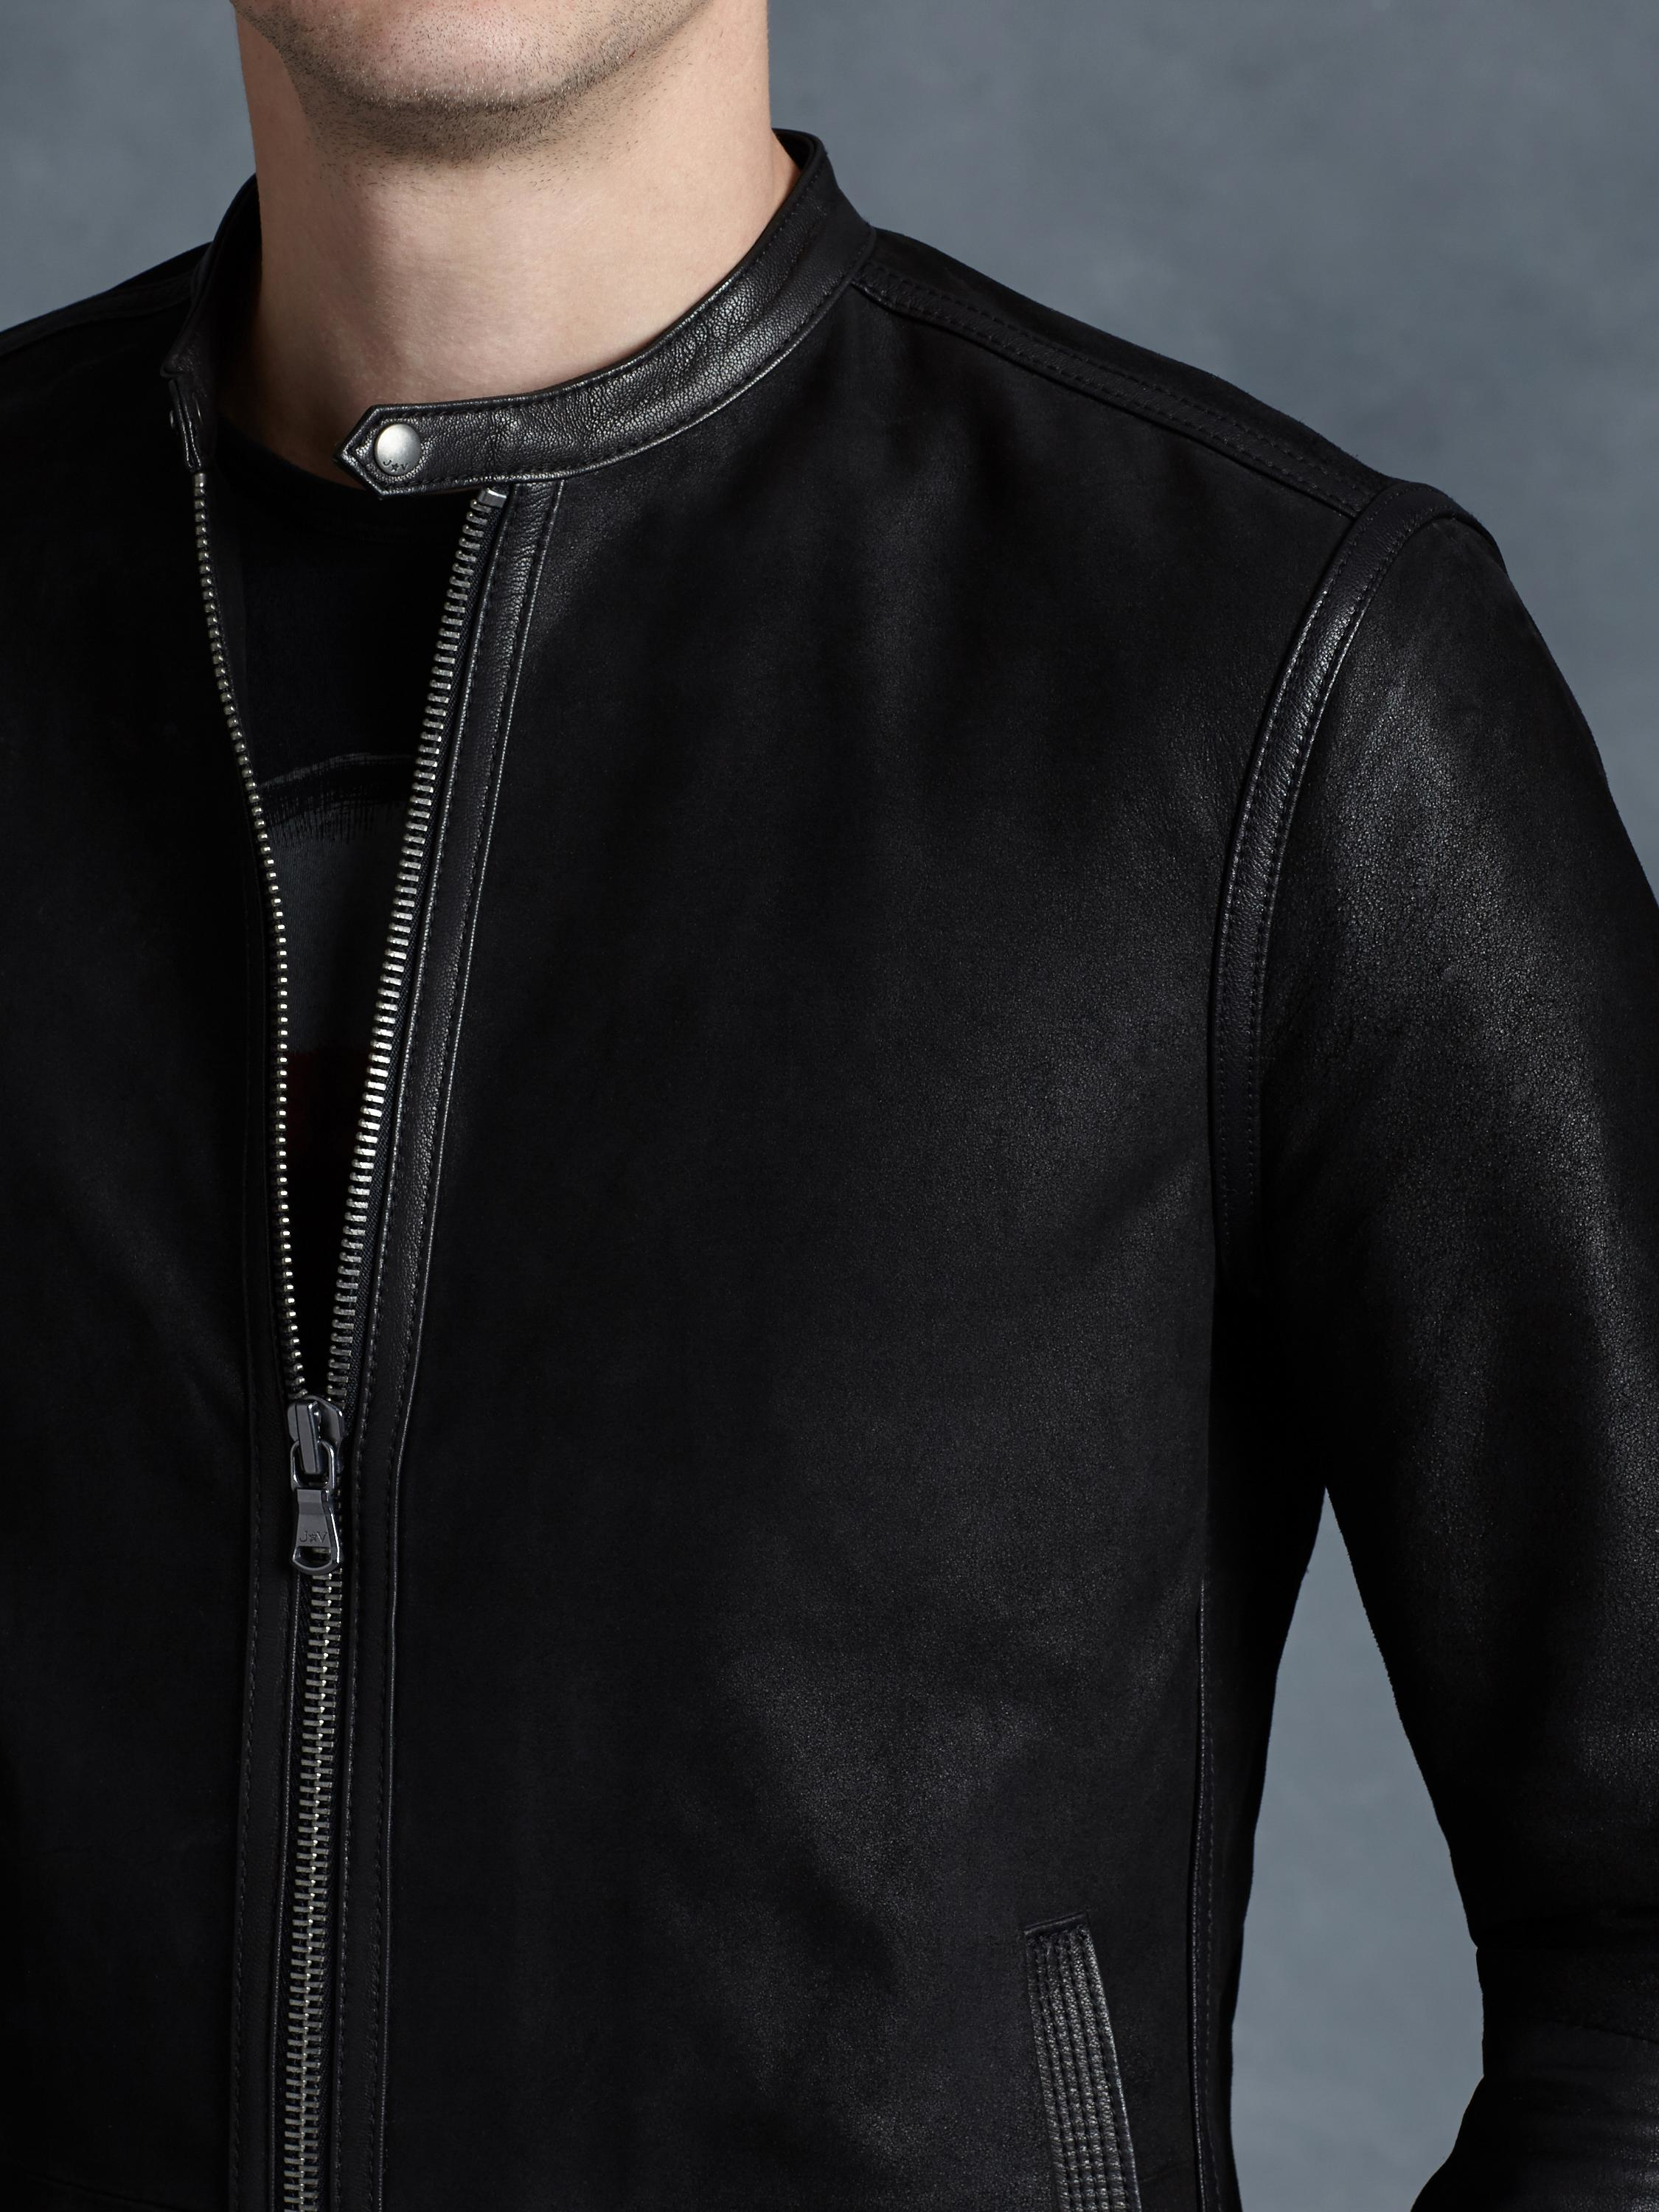 john varvatos leather racer jacket in black for men | lyst